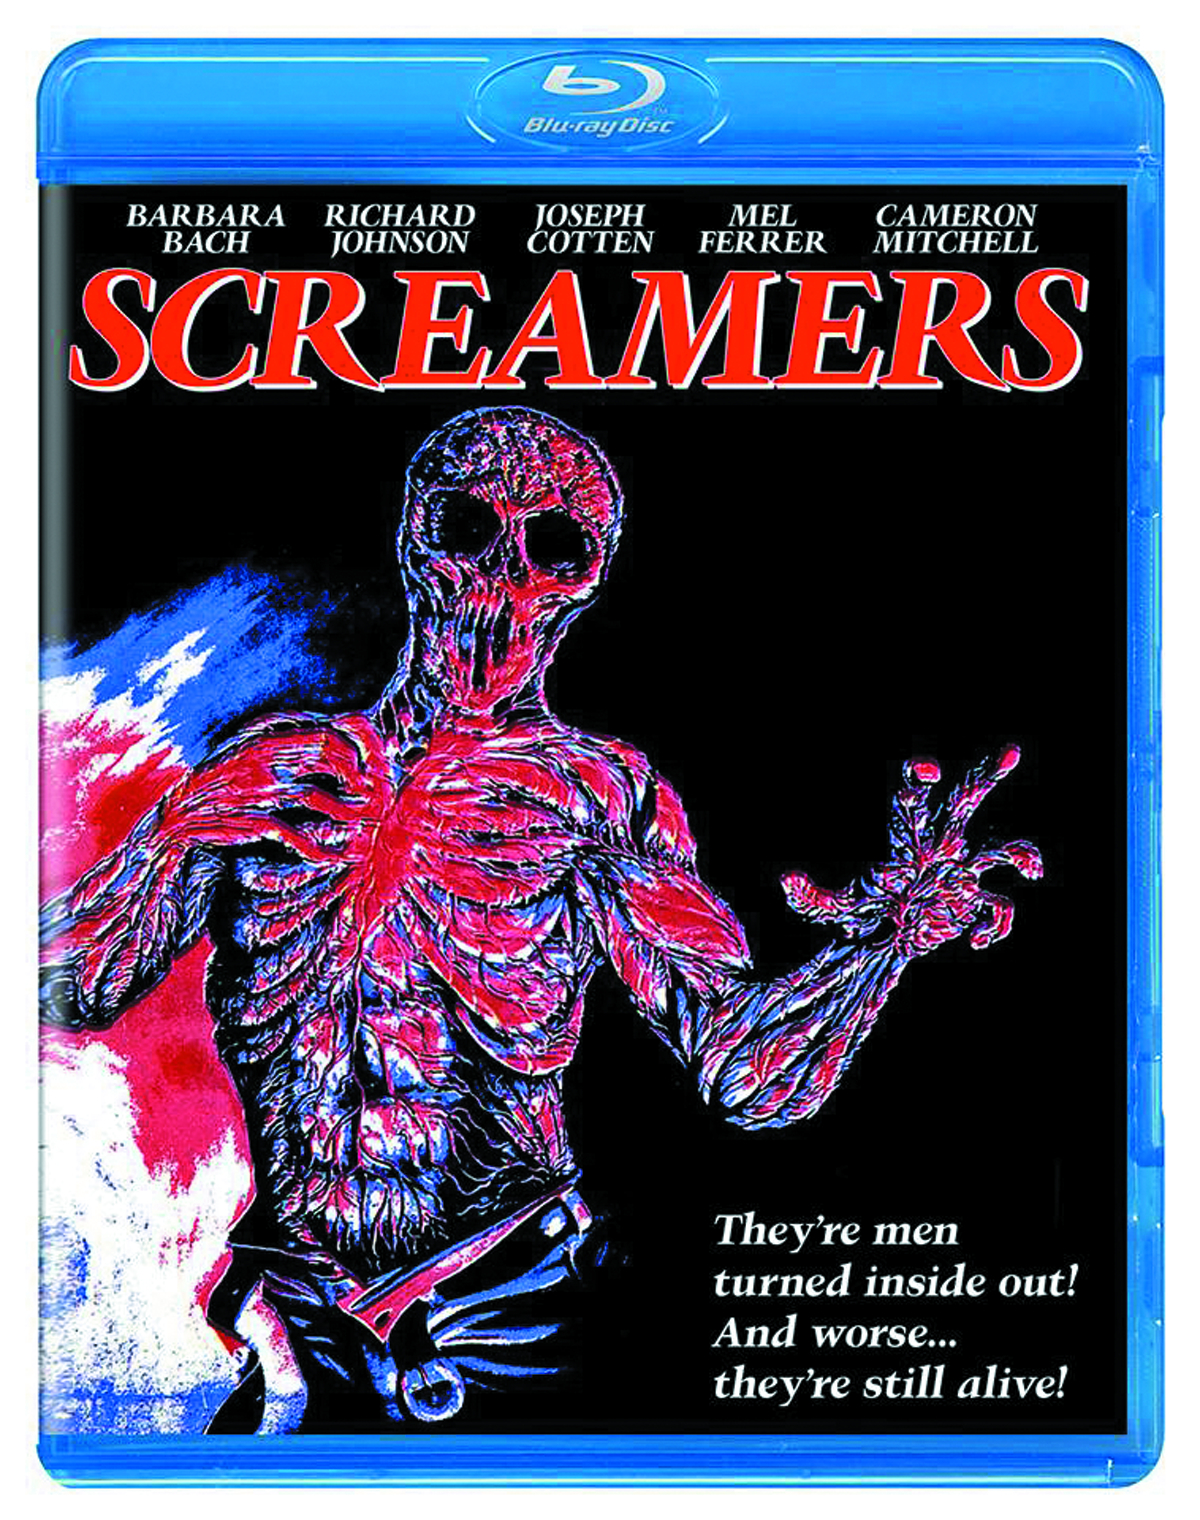 SCREAMERS 1979 BD